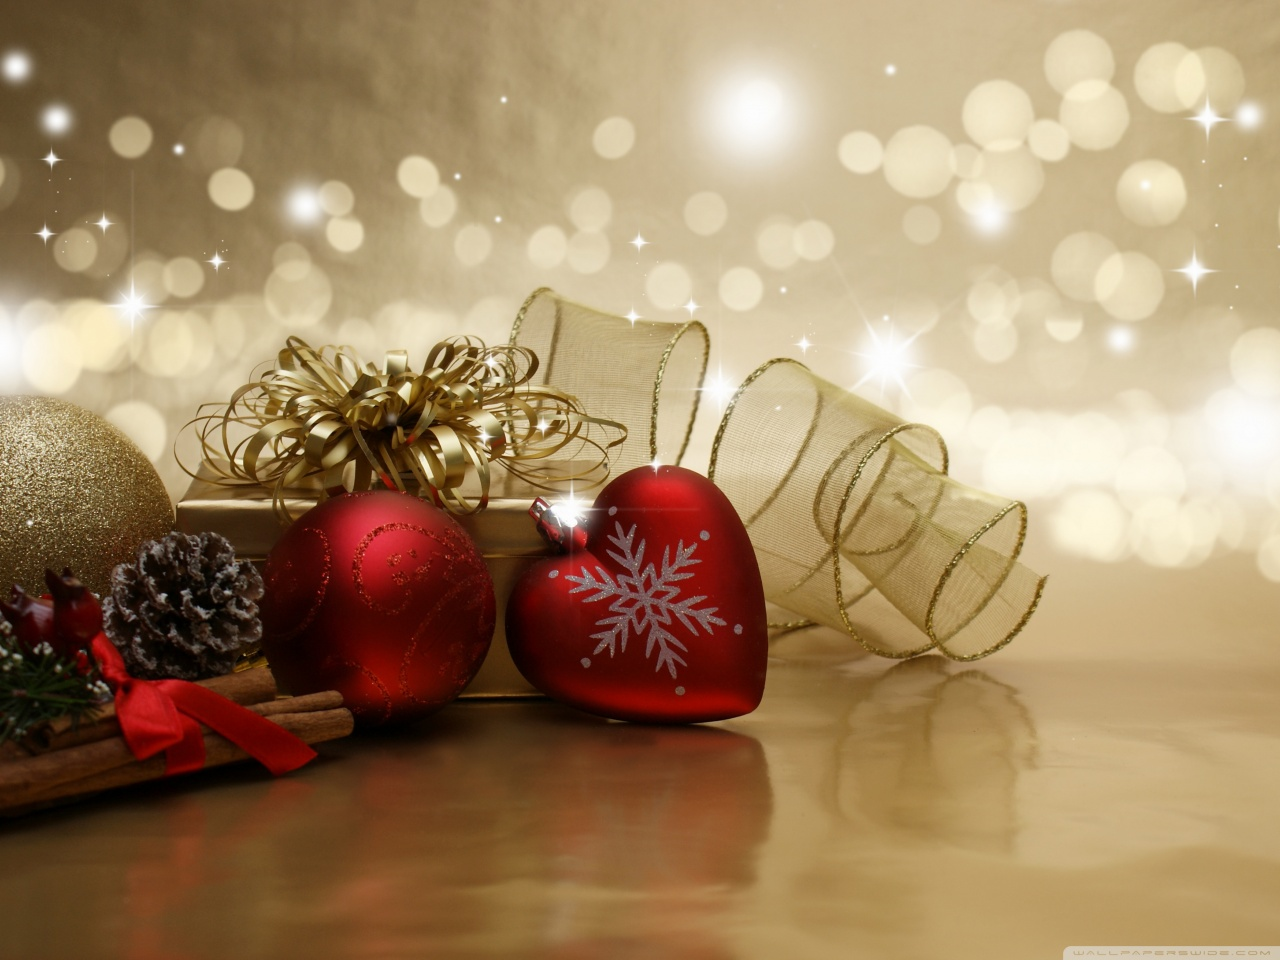 wallpapers-christmas-craciun-4